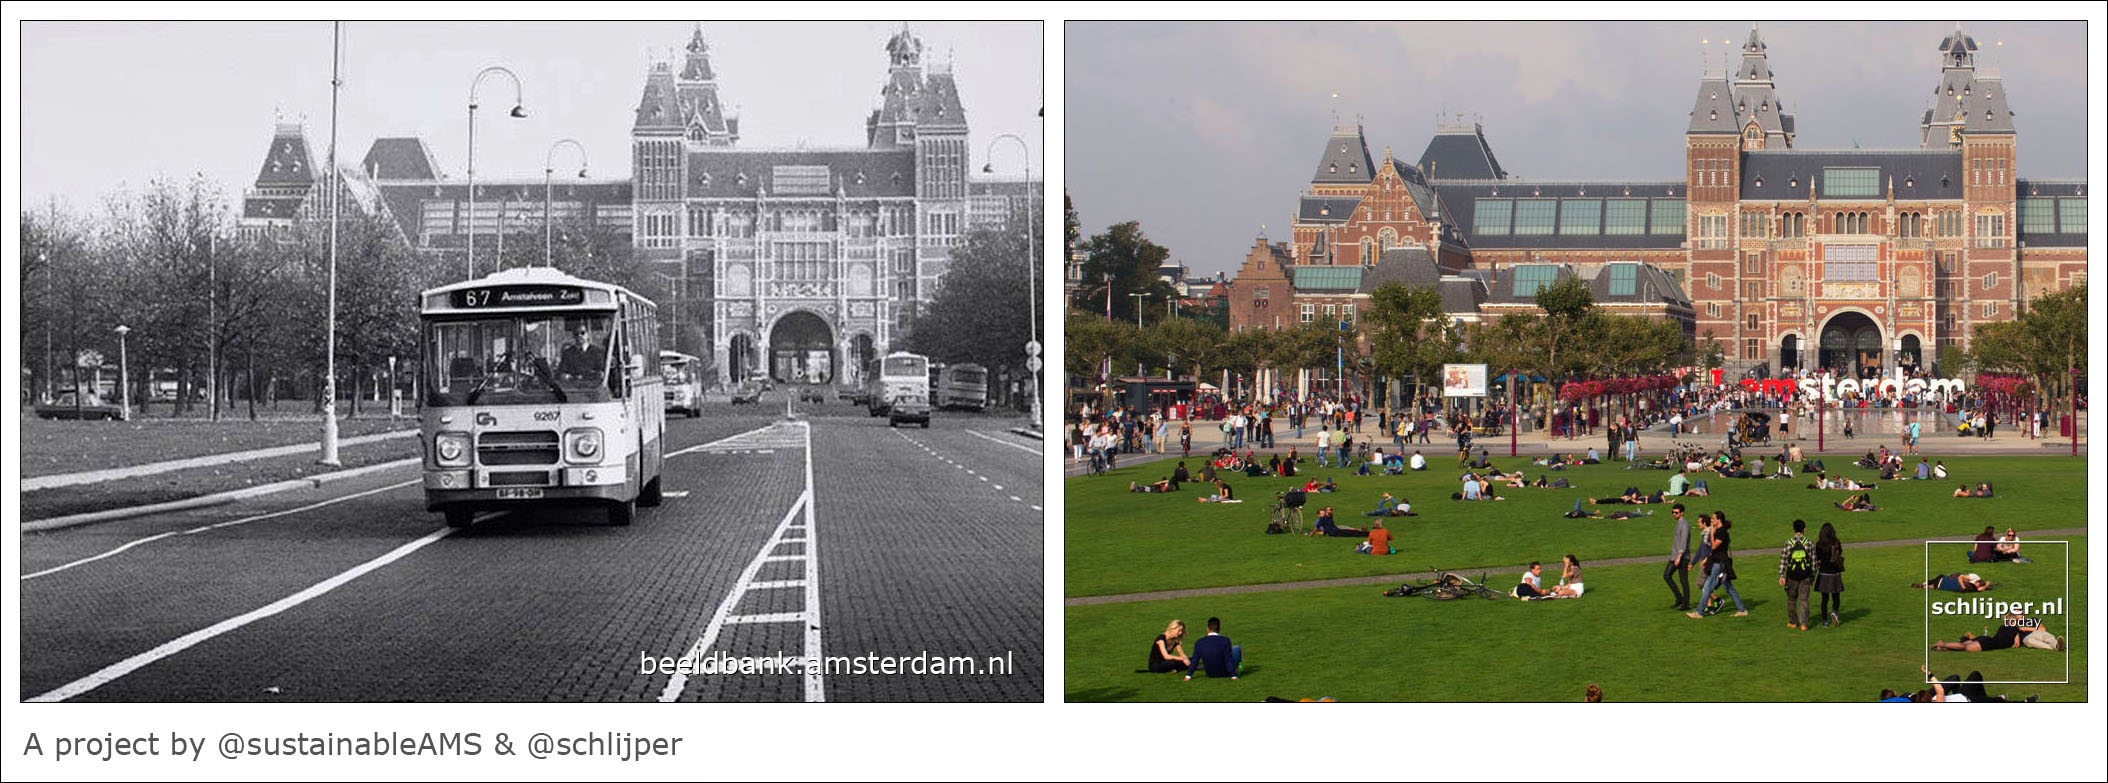 Museumplein comparison